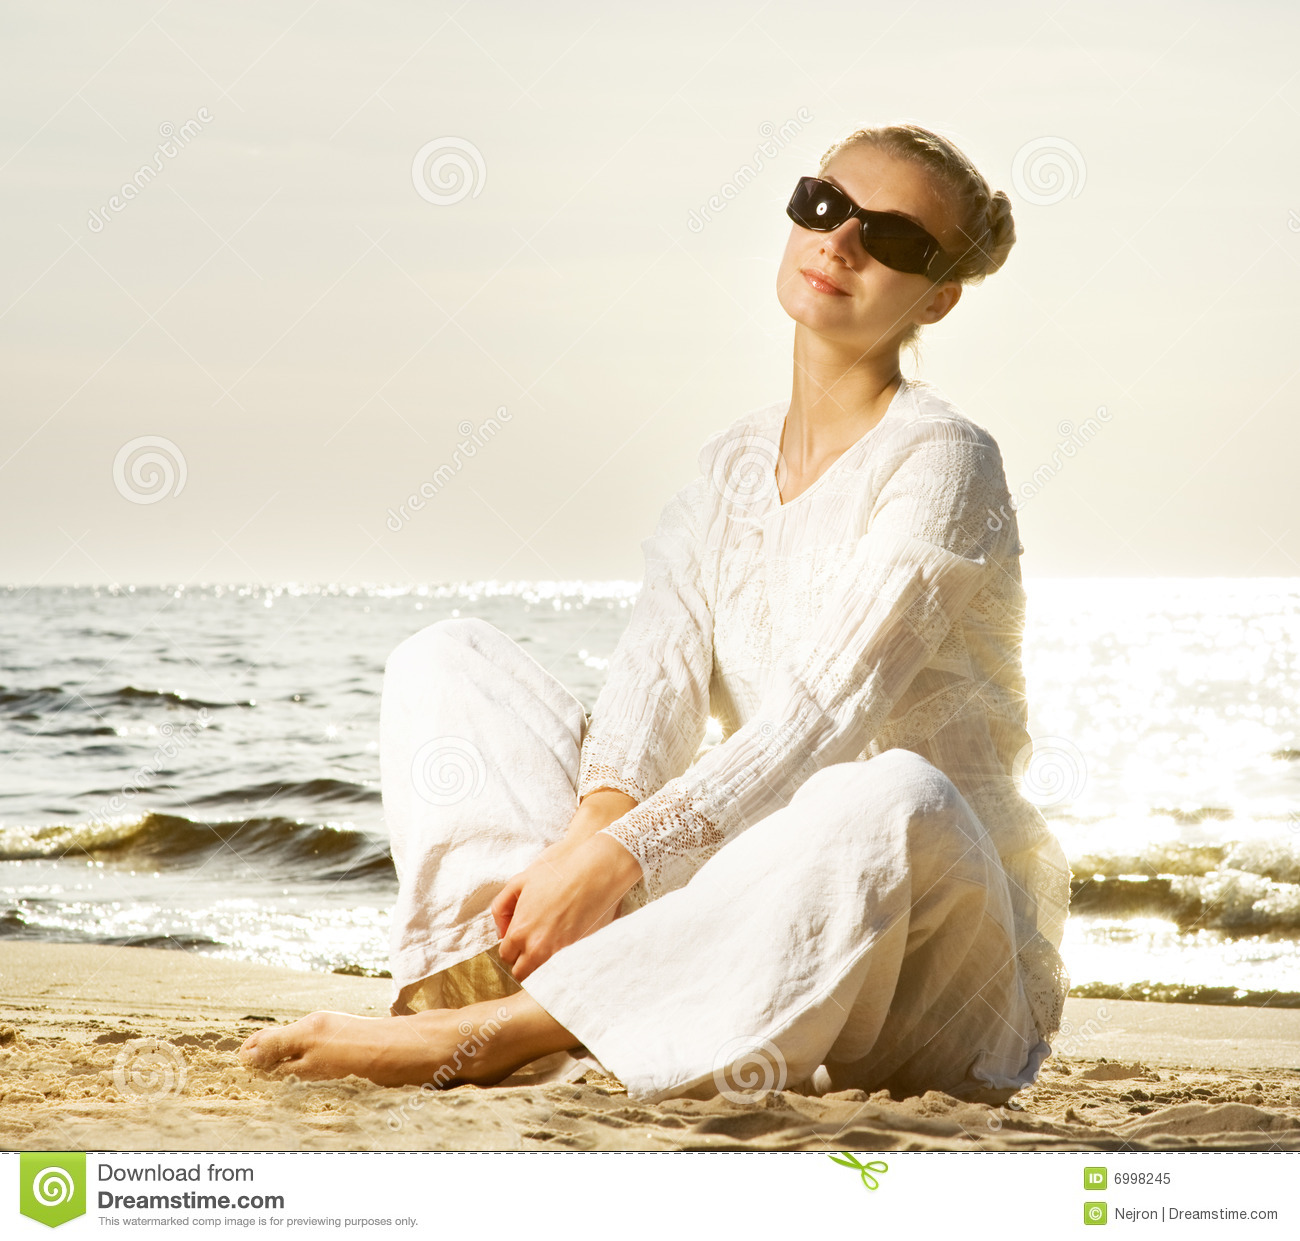 Woman Relaxing On A Beach Stock Image. Image Of Elegant